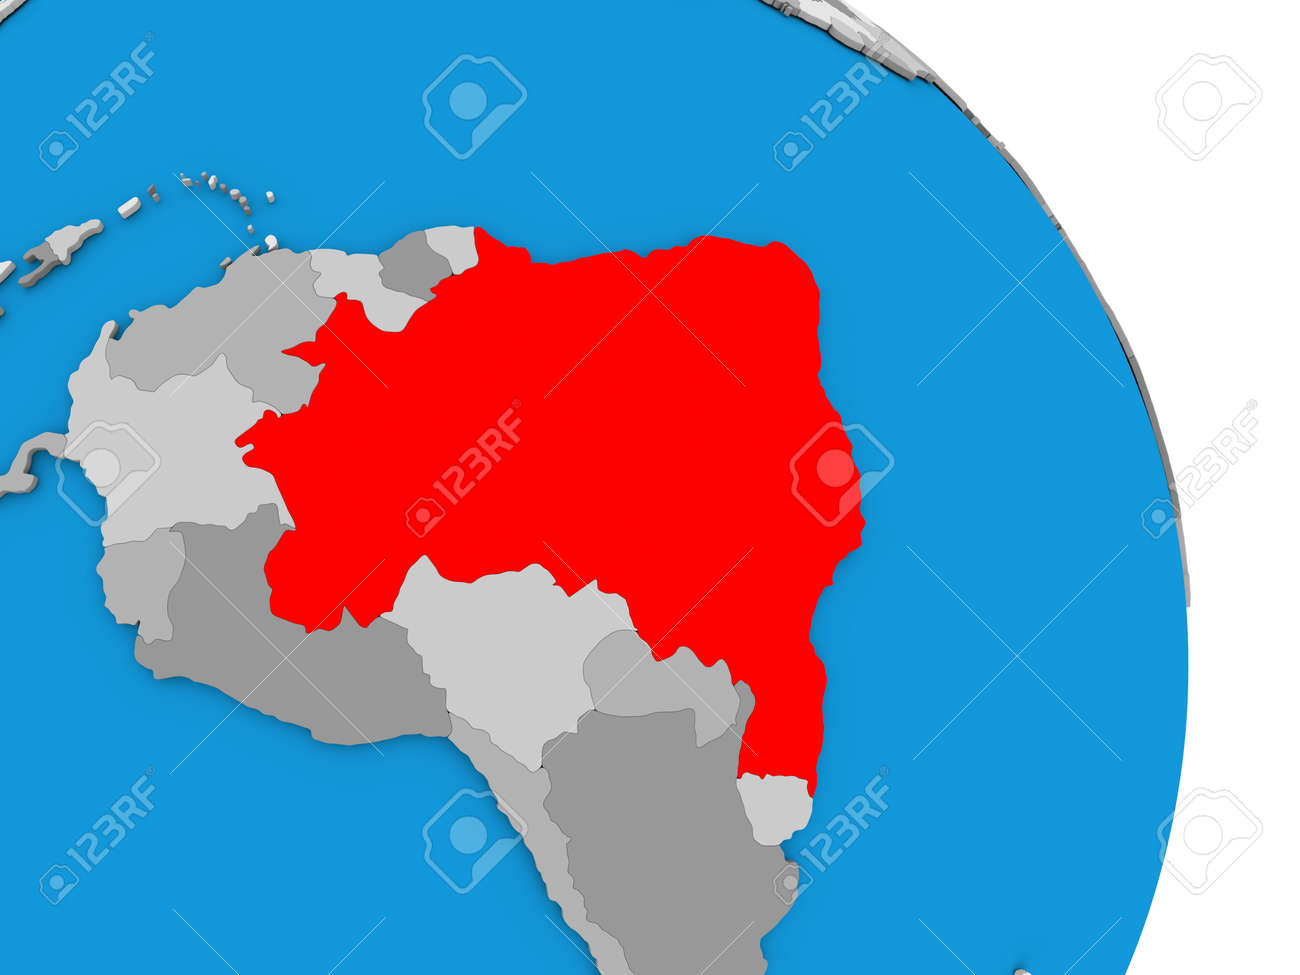 Brazil highlighted in red on simple globe with visible country brazil highlighted in red on simple globe with visible country borders 3d illustration stock illustration gumiabroncs Images